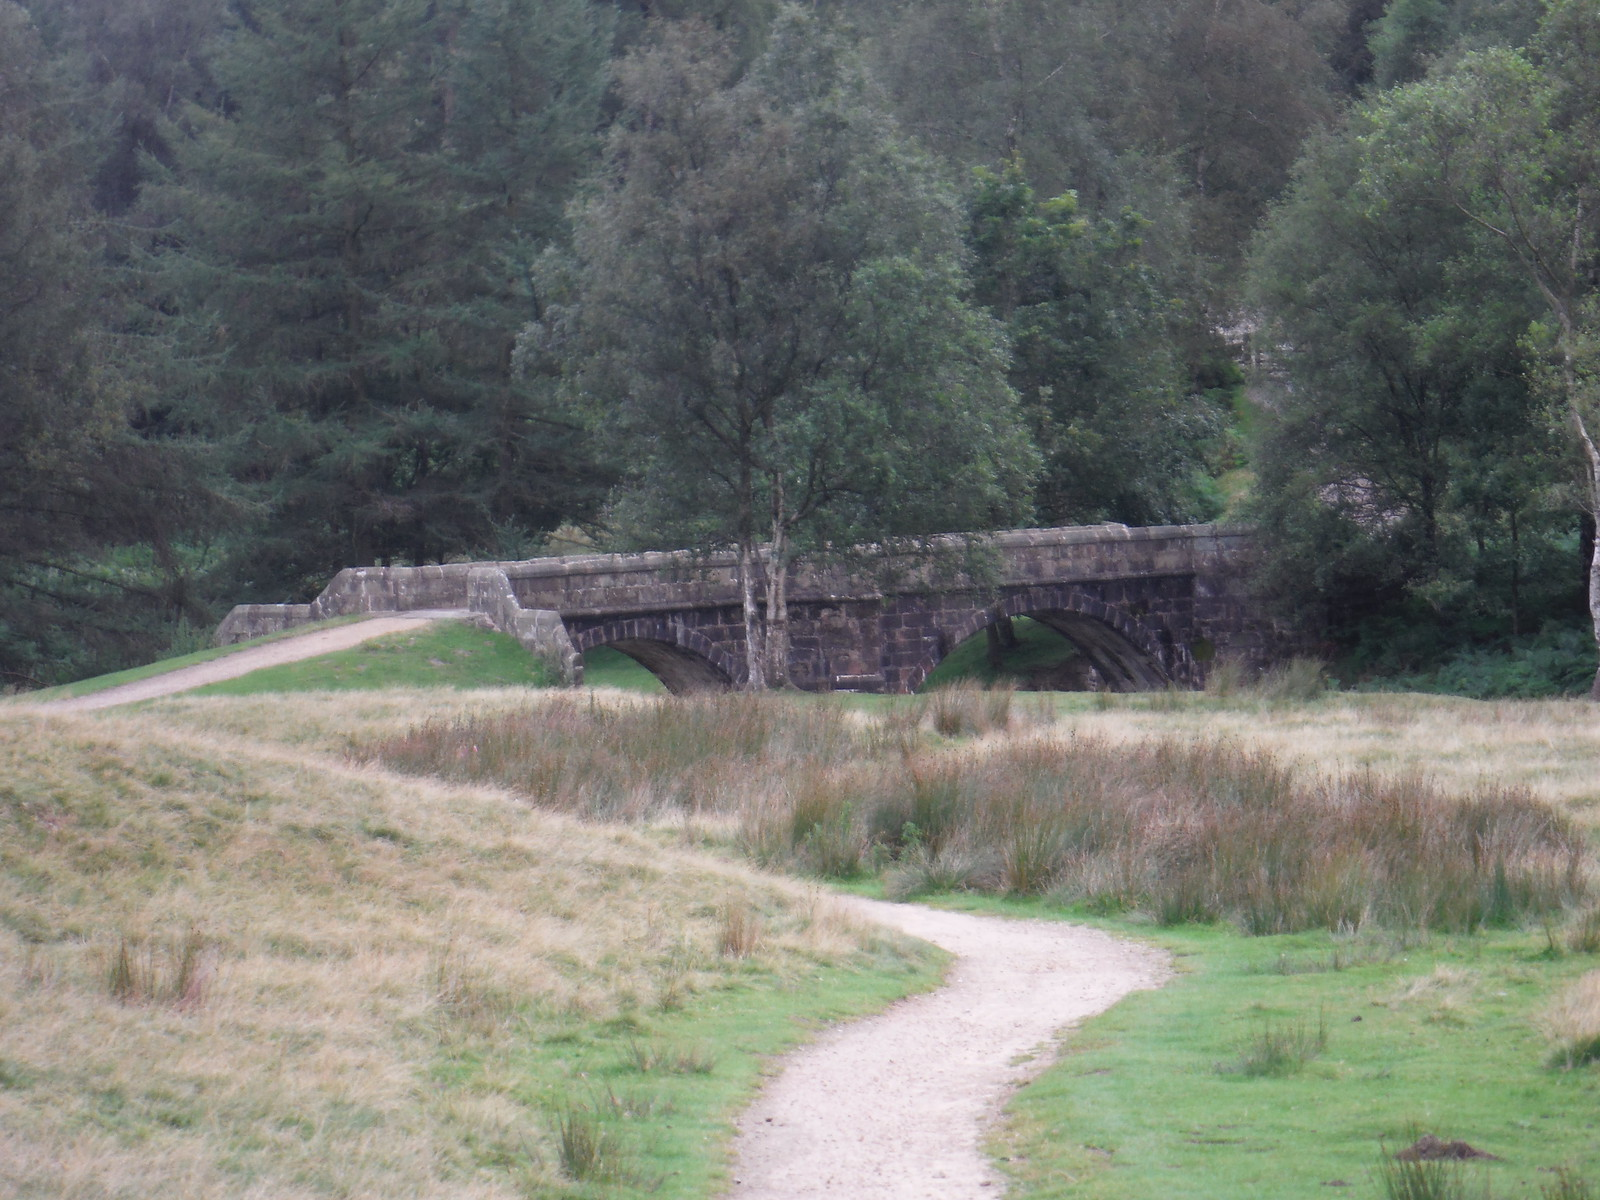 Slippery Stones Bridge SWC Walk 350 - Fairholmes Circular (via Bleaklow and Derwent Head)